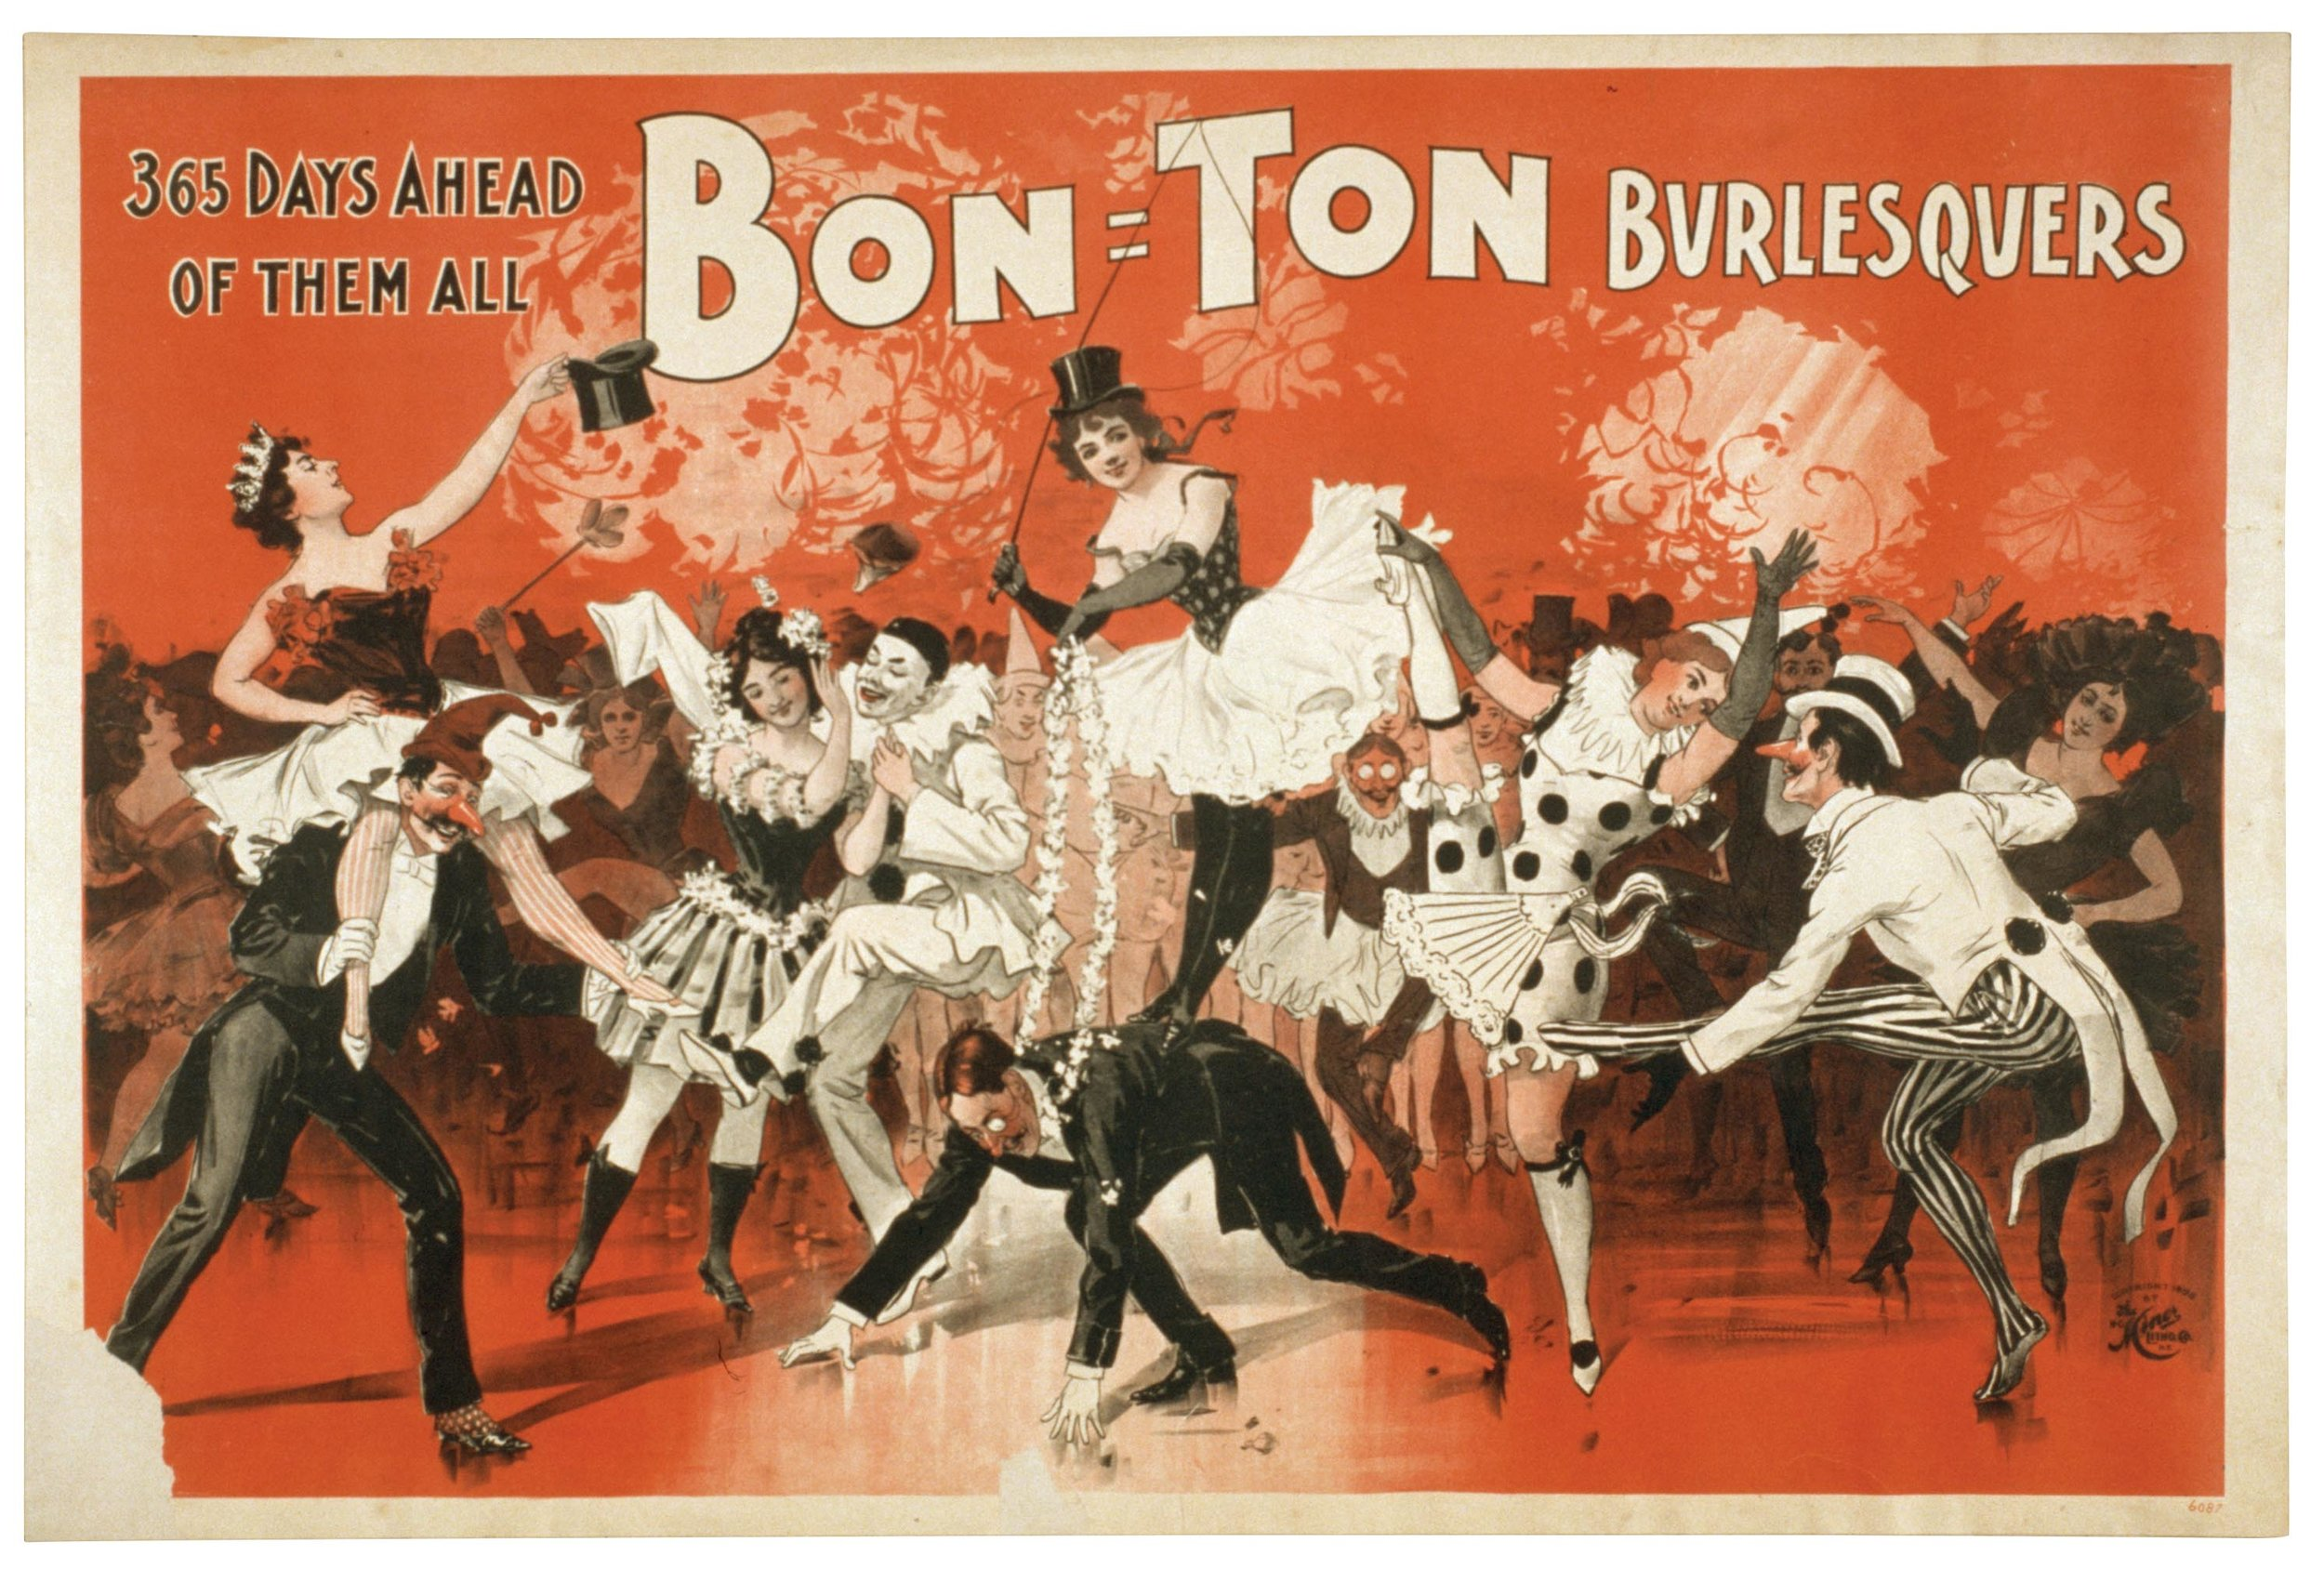 A lobby card from 1898 for a burlesque show in the US starring the Bon Ton Burlesquers